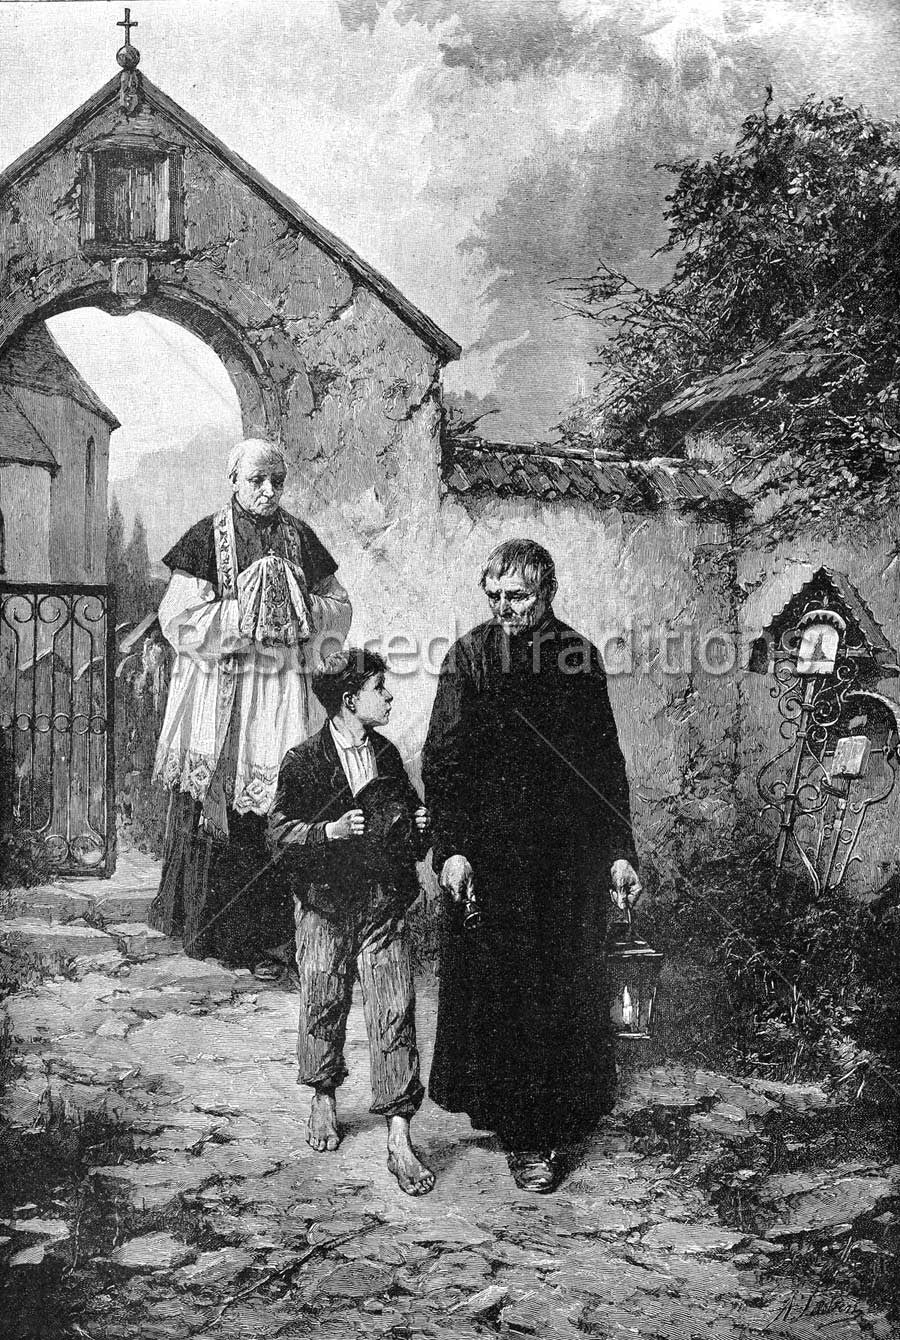 Priest Walking with Boy